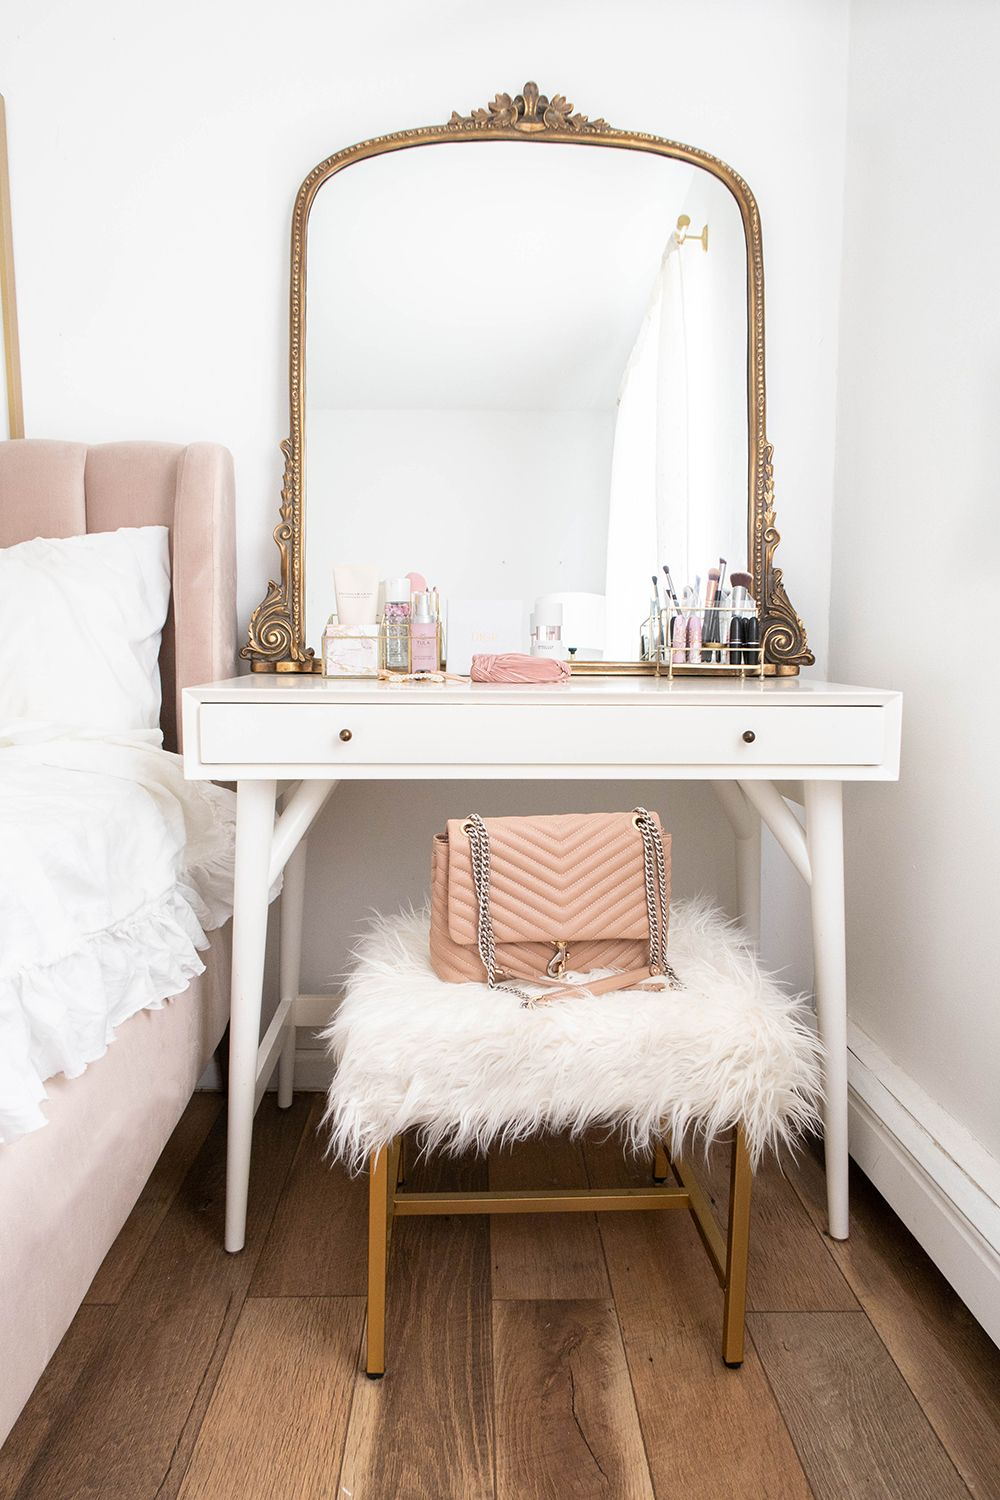 Small Space Vanity Inspiration With Images Vanity Inspiration